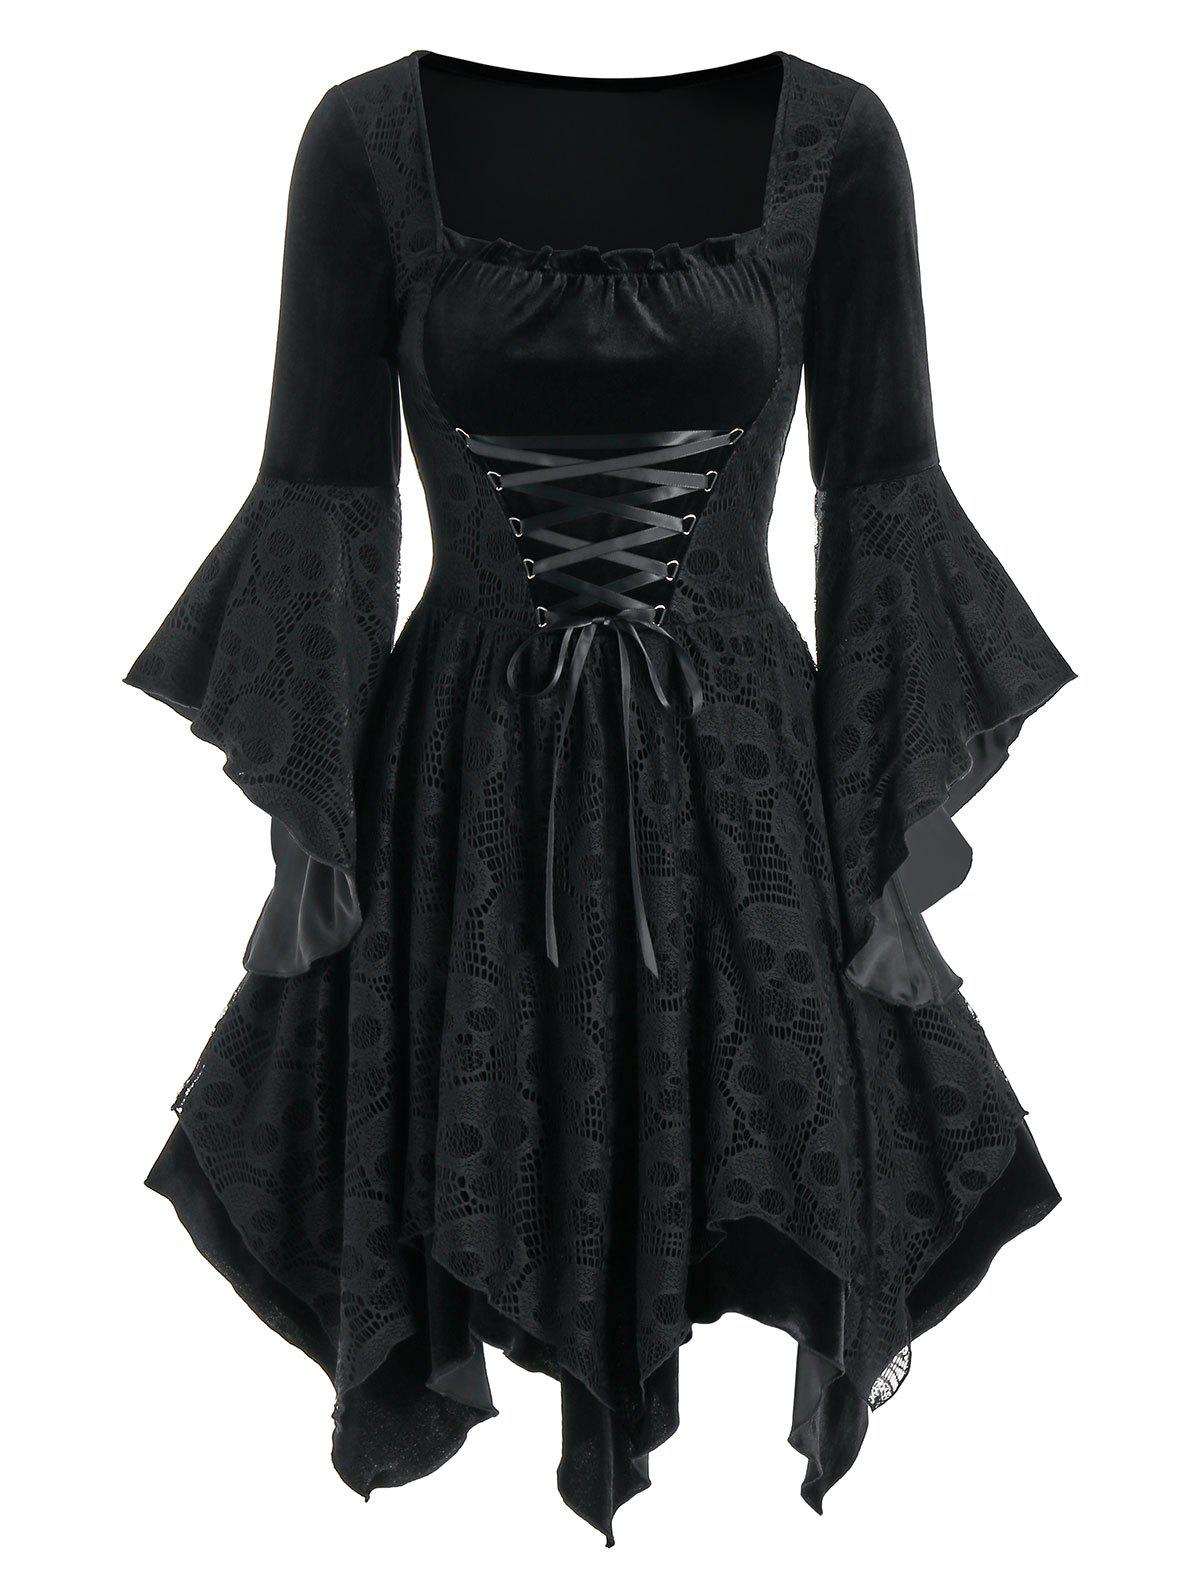 Halloween Skull Lace Insert Velvet Handkerchief Dress - BLACK XL